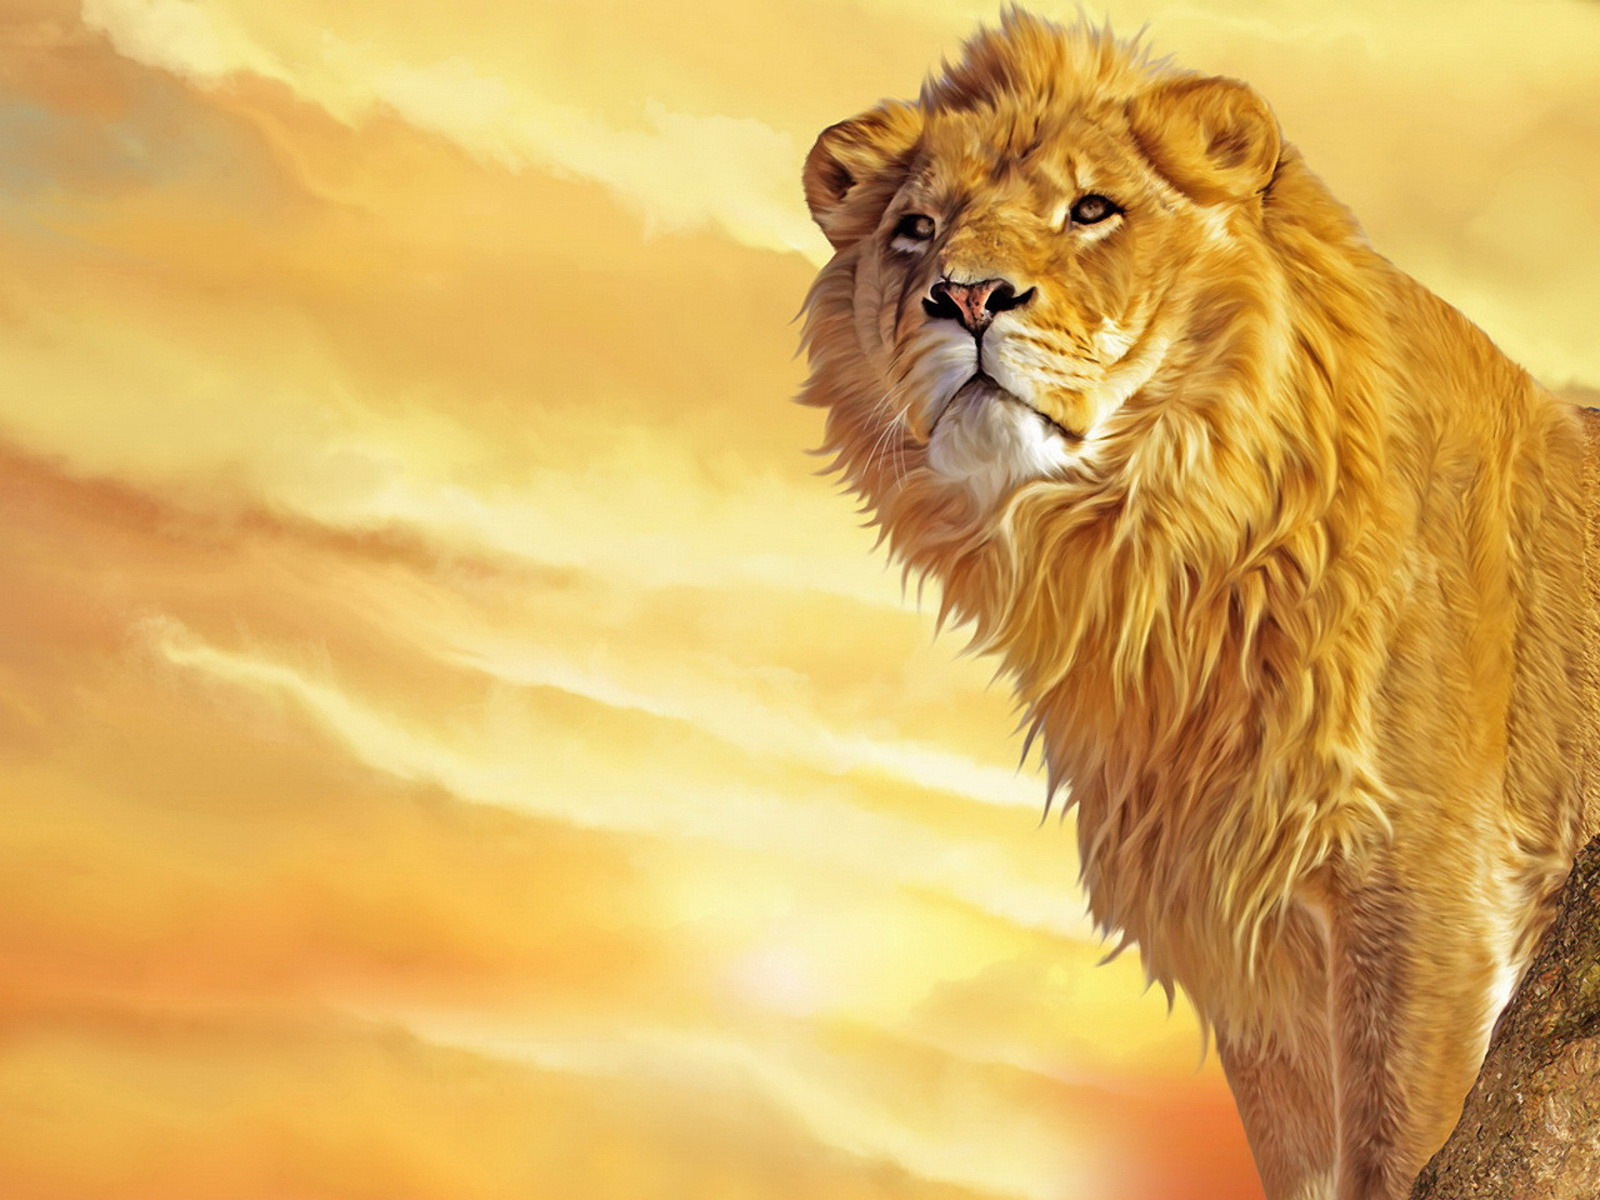 Cartoon Lions Lion Painting Xwallpaper Desktop Wallpaper